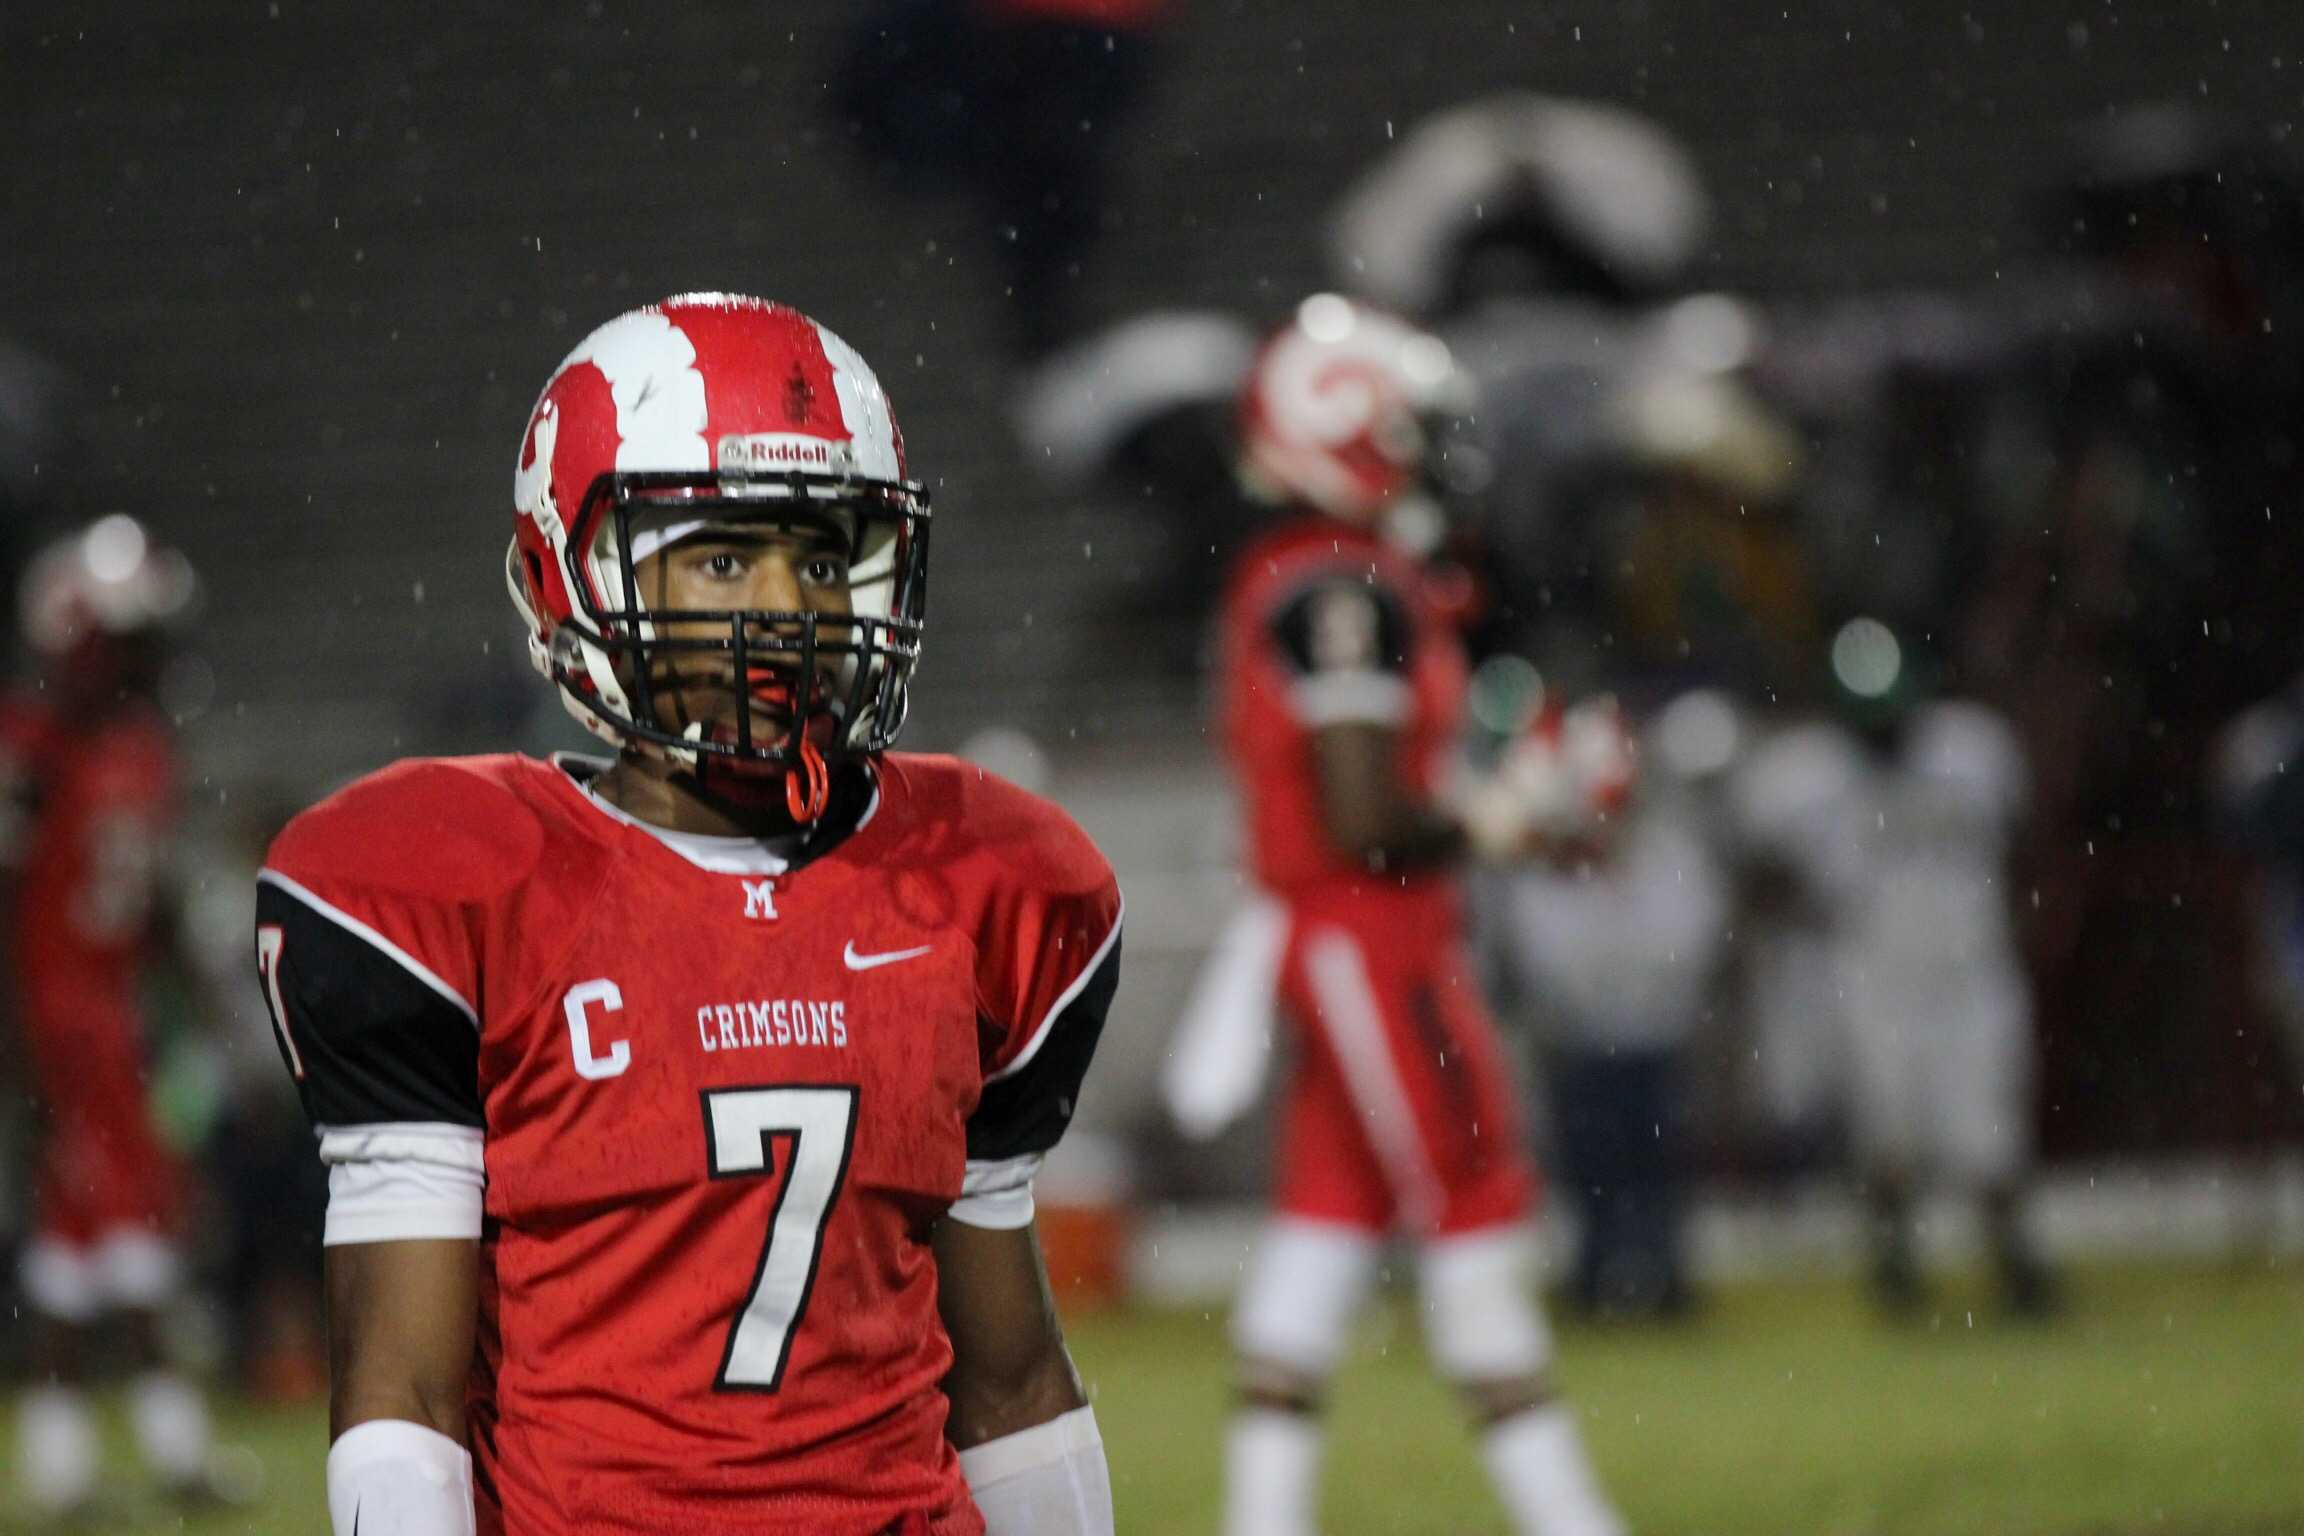 Bryce Cosby (11, #7) stars off into the heavy rain. Photo by Meaghan Sutton.